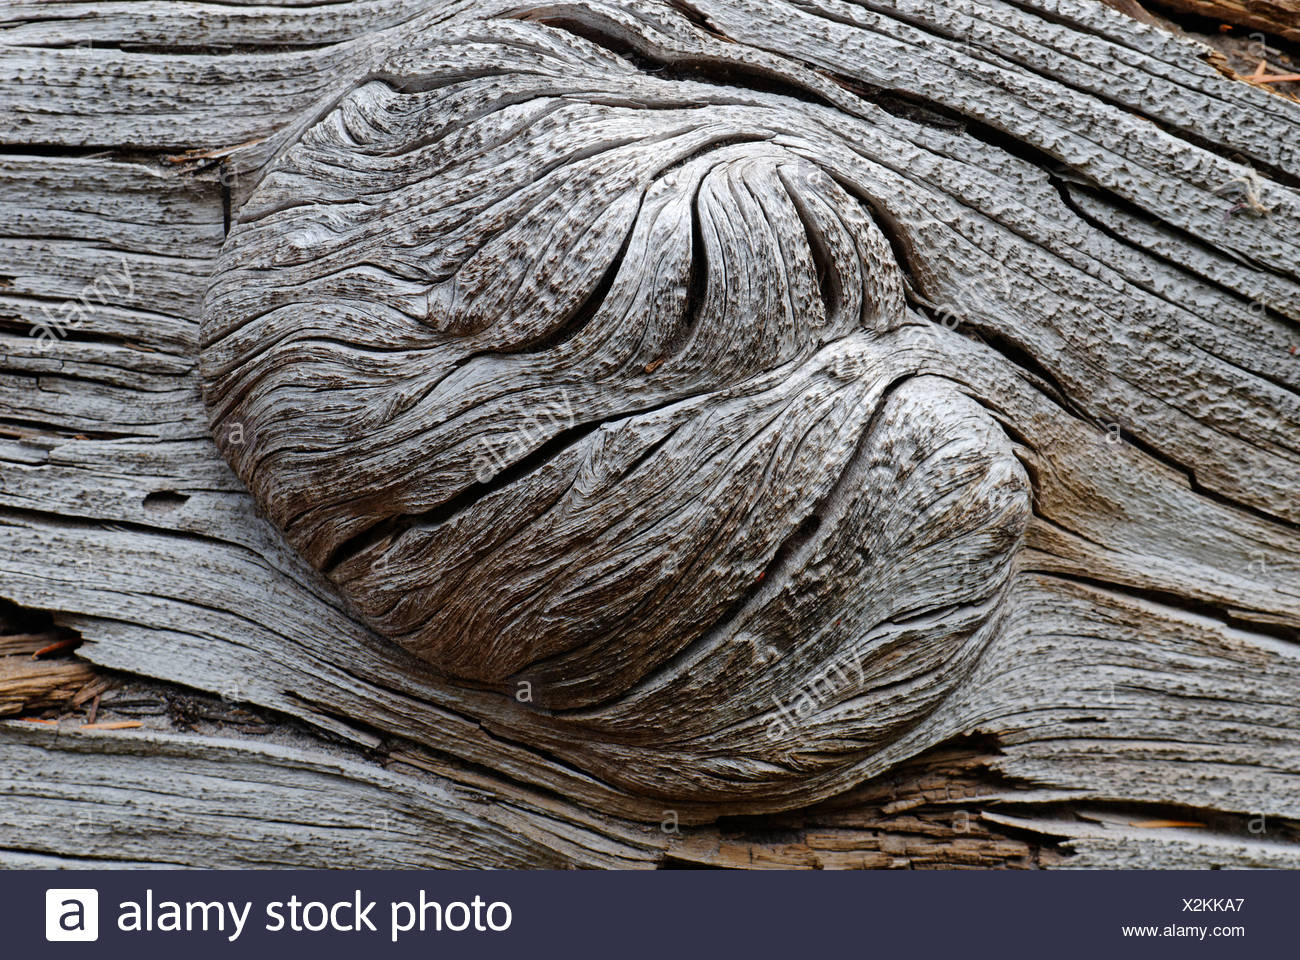 knots in the wood stock photos knots in the wood stock images alamy